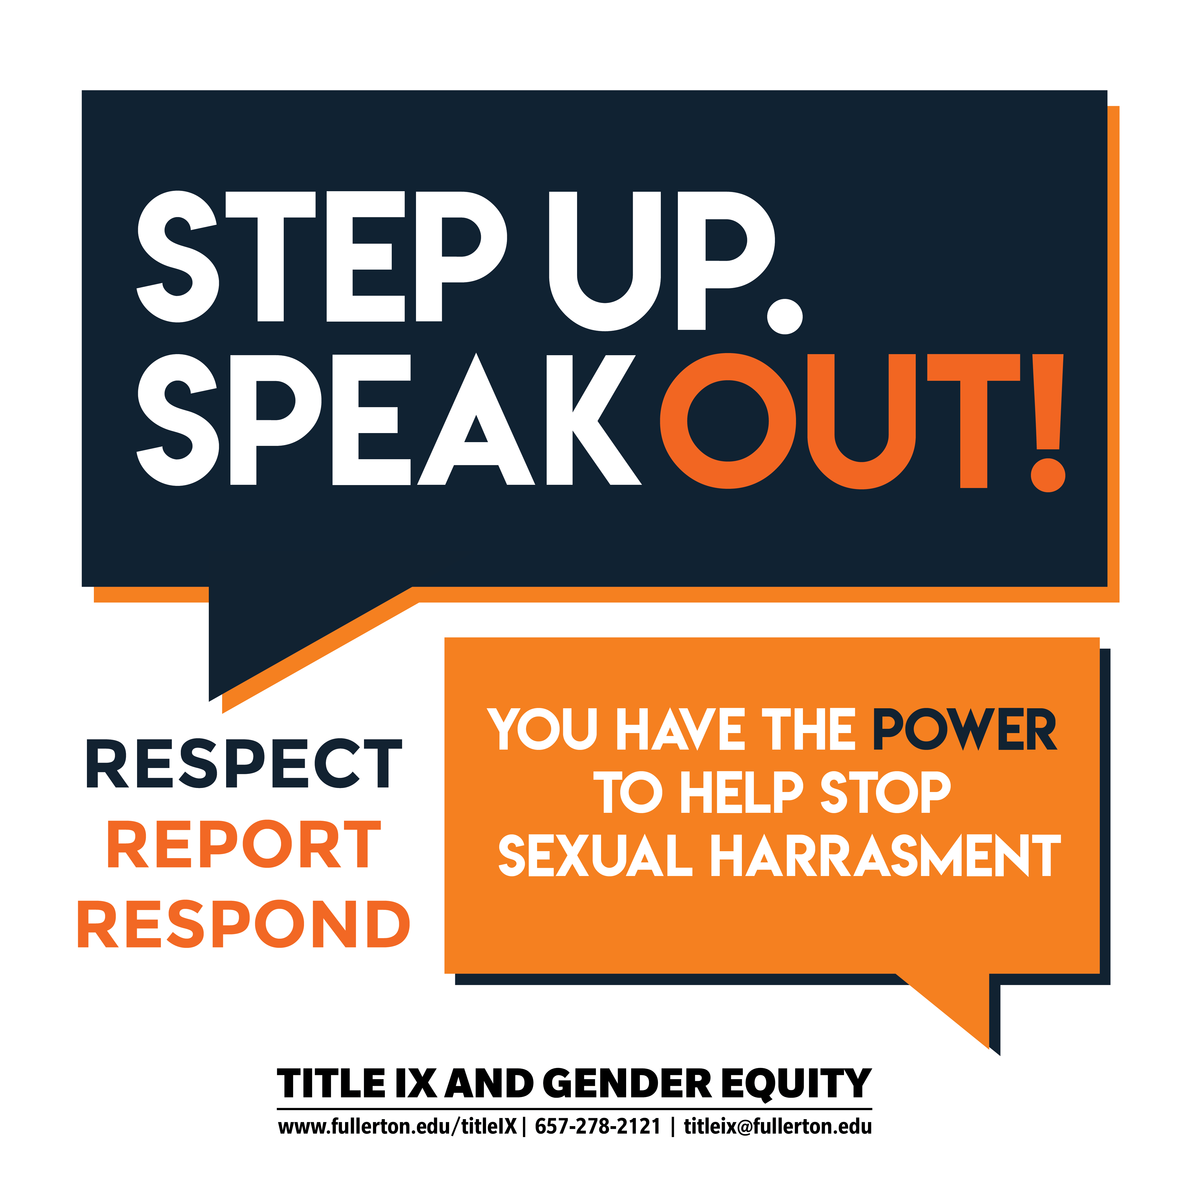 Step up, speak out!  You have the power to help stop sexual harassment.